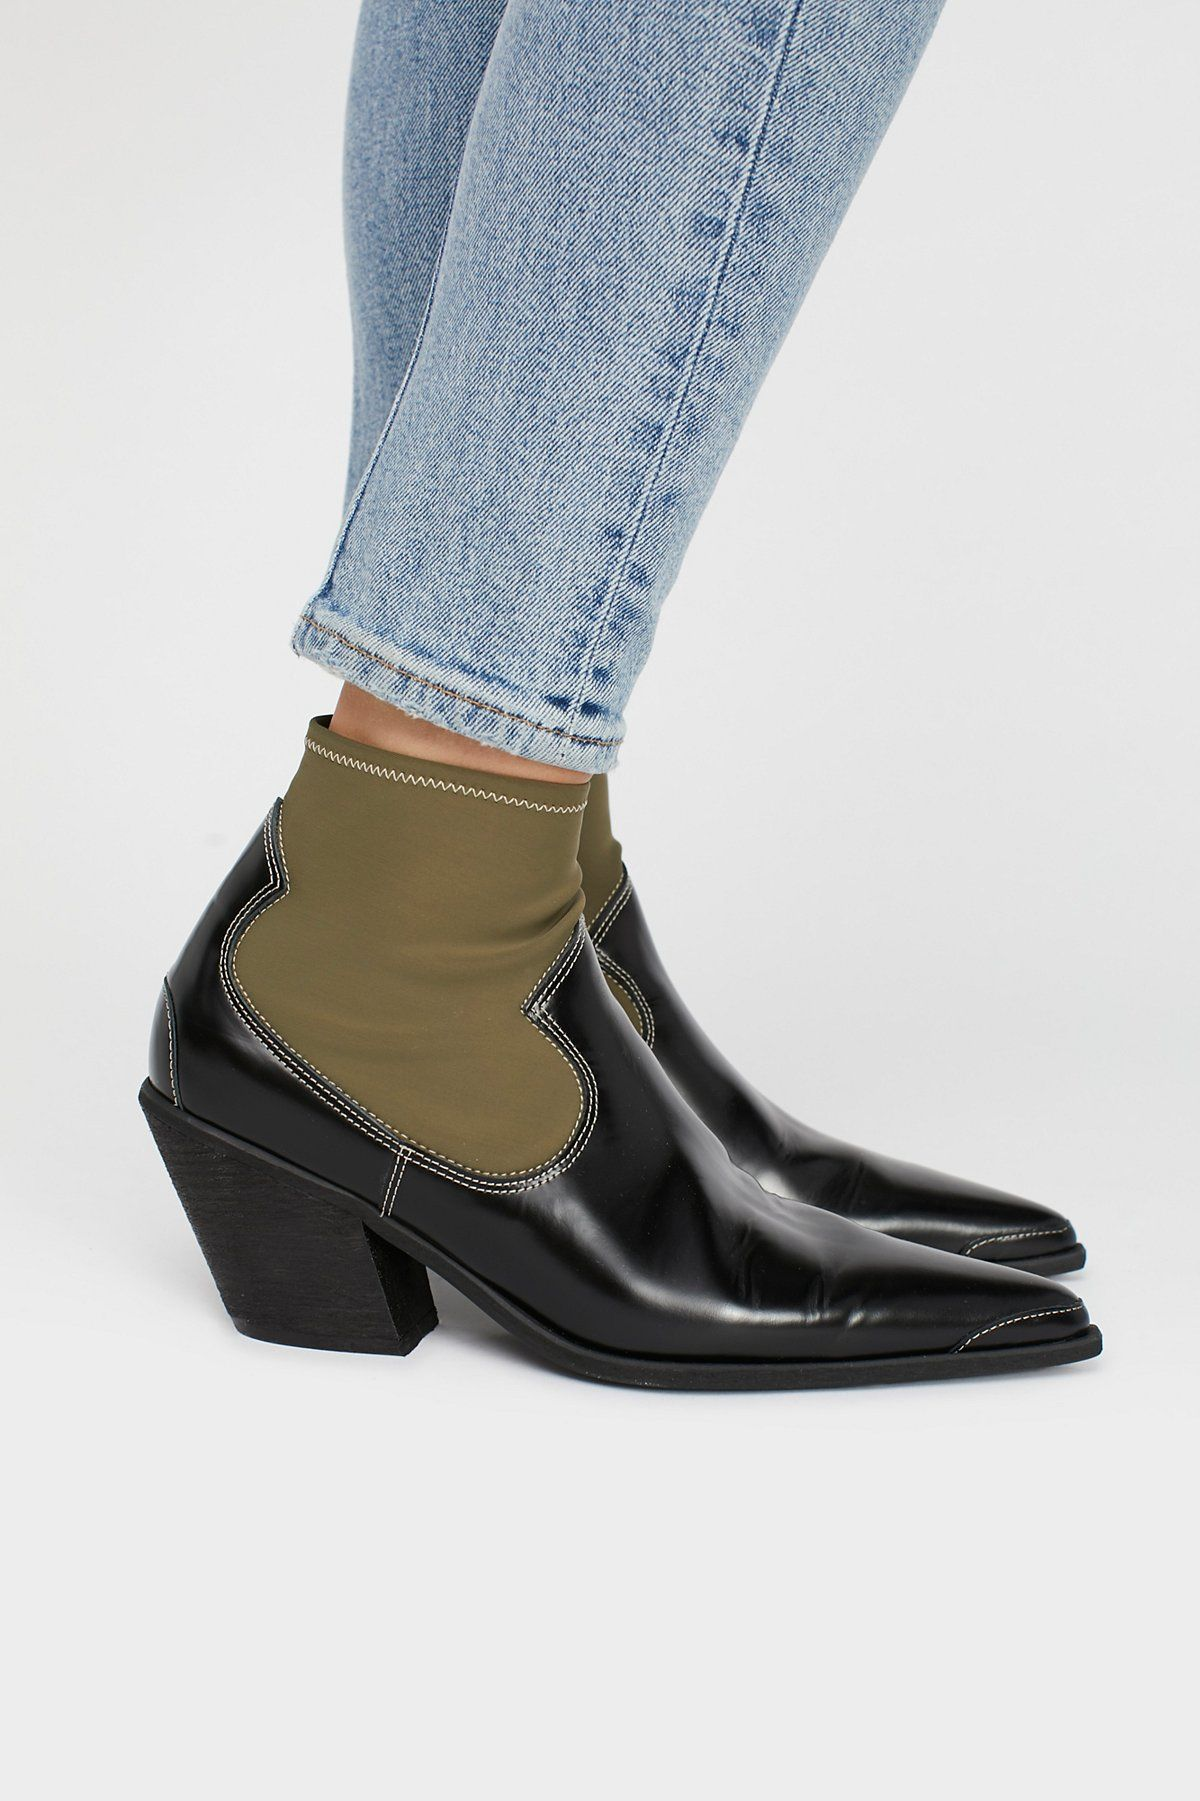 ad895b4d47f FP Collection Black Box   Green Jackson West Boot at Free People Clothing  Boutique